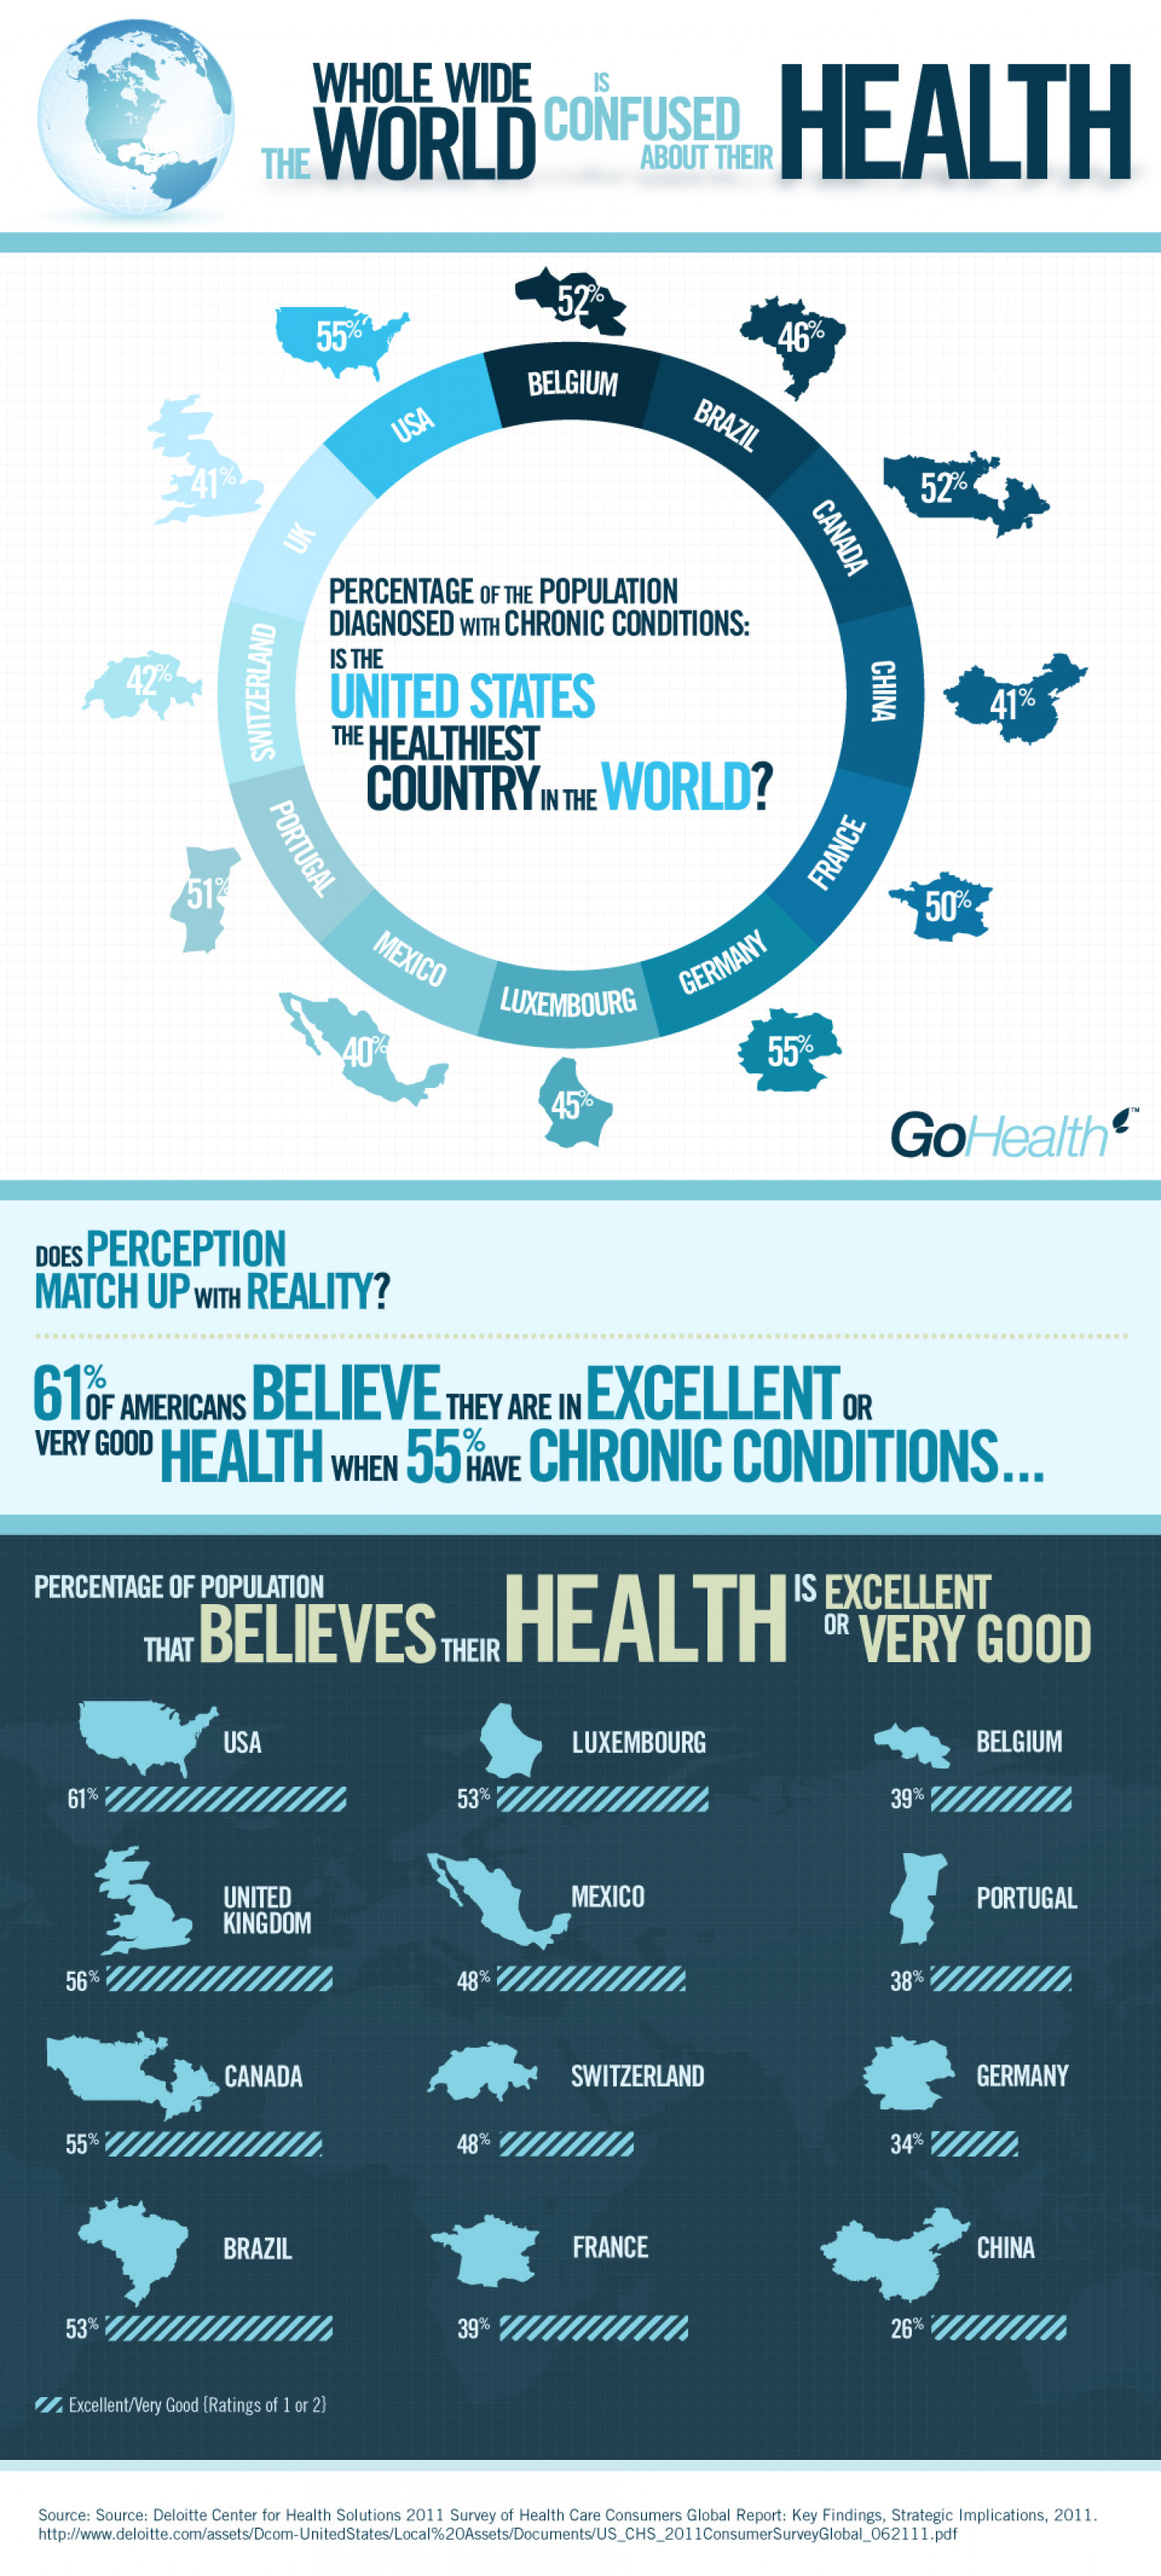 The Whole Wide World is Confused about their Health Infographic